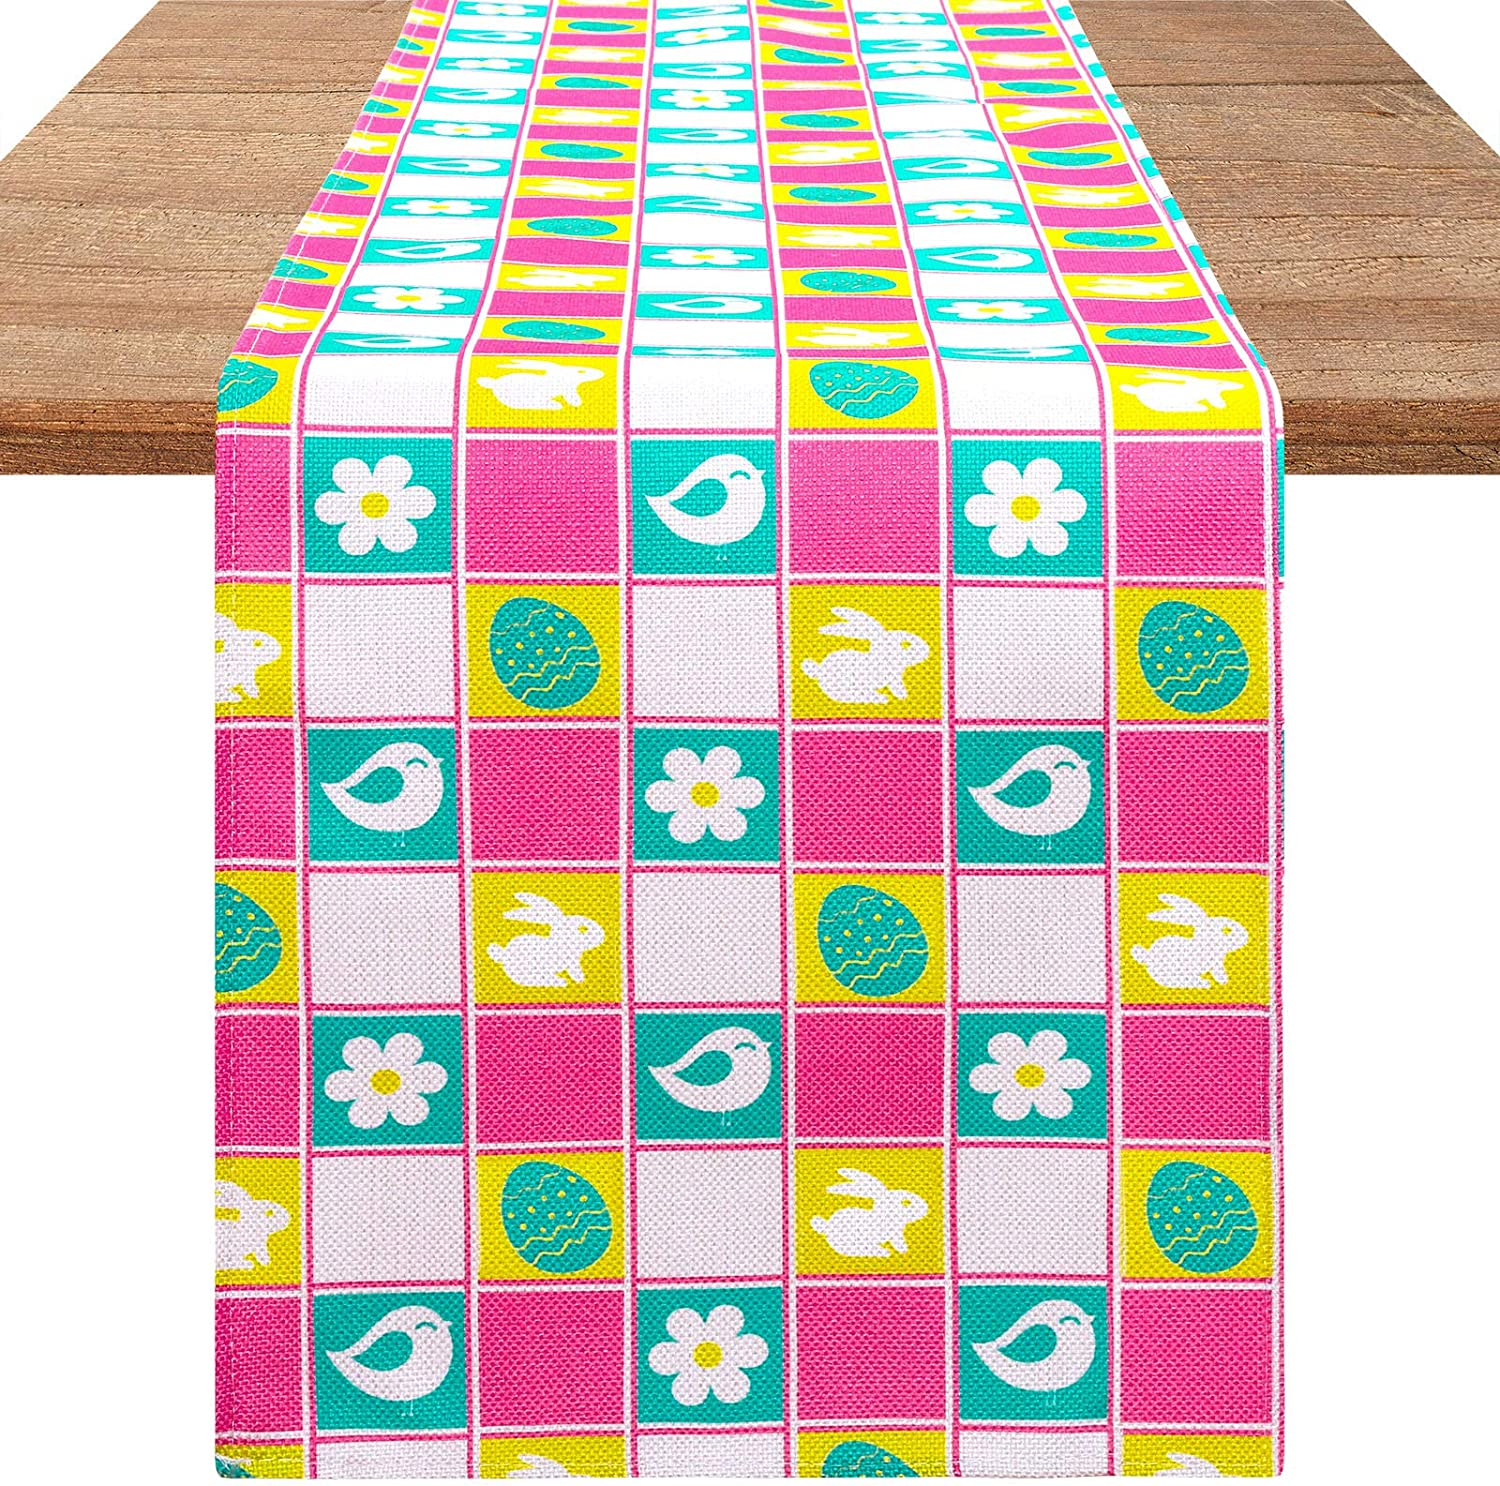 Aneco Easter Table Runner Cotton Linen Plaid Spring Table Runner Rabbit Easter Egg Table Runner for Easter Table Decor, 12 x 71 Inches